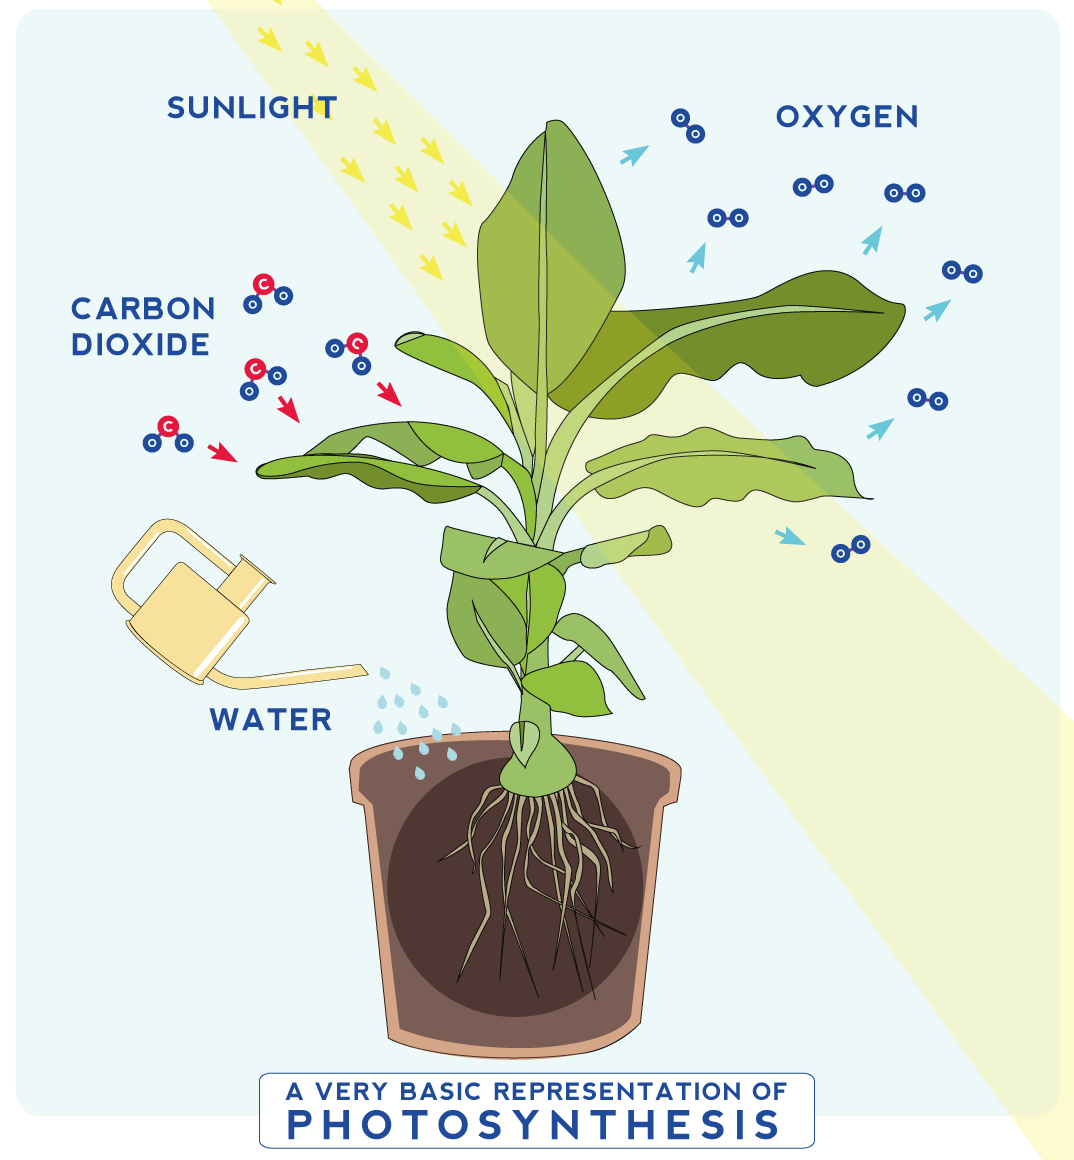 6 Reasons to get houseplants now - # 01 Plants create oxygen | infographic by House of Thol